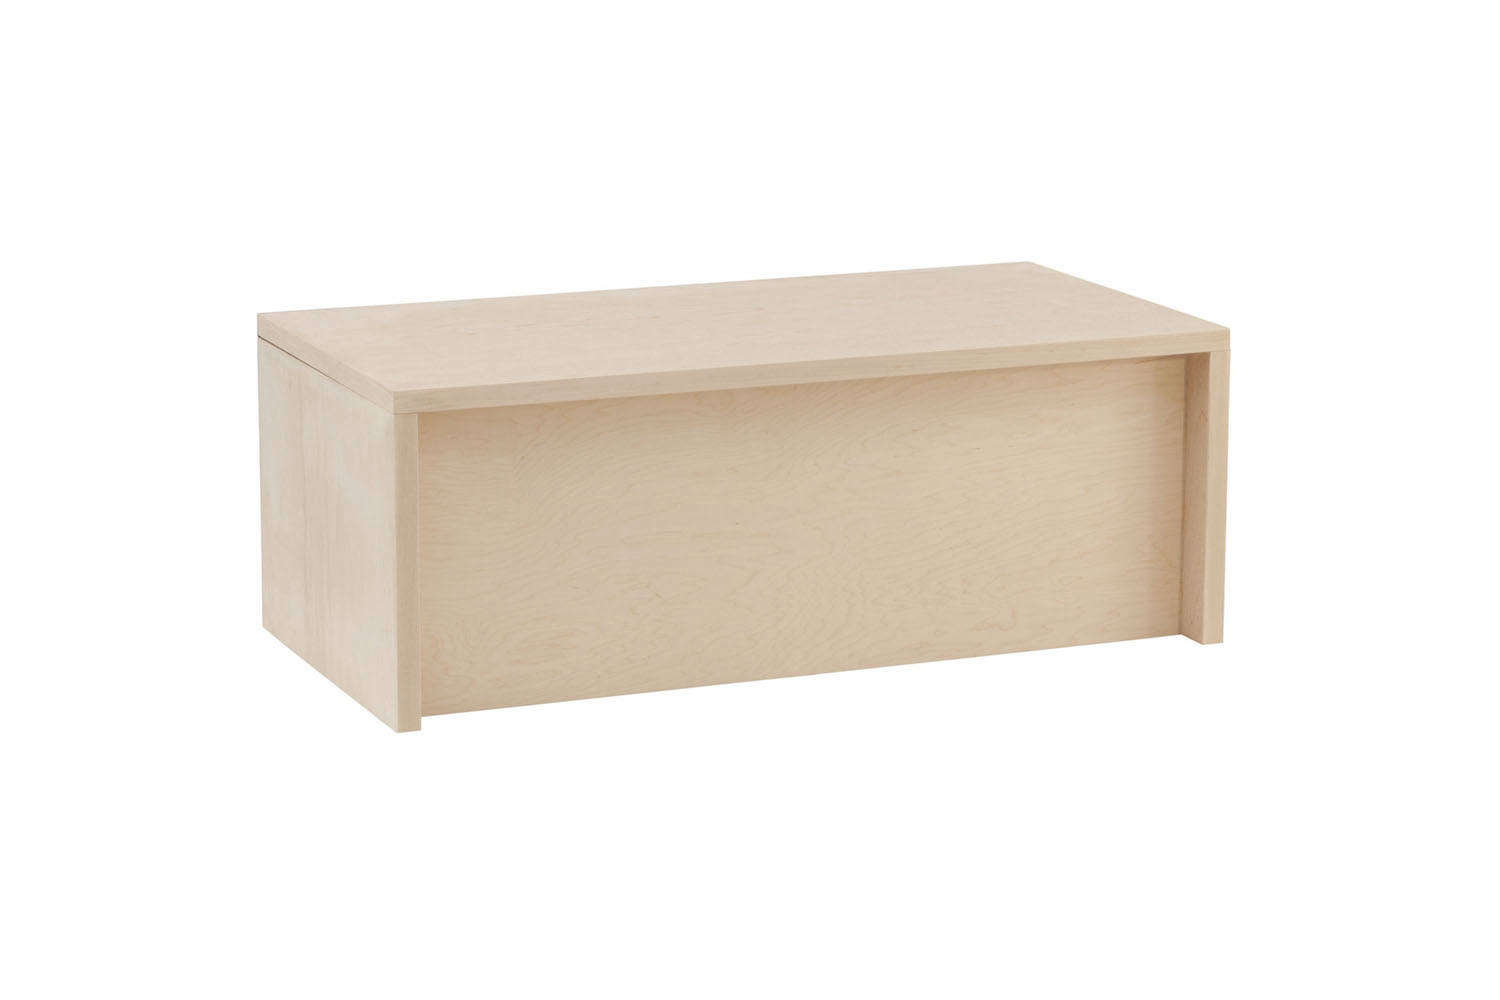 The Thompson Storage Chest comes in Maple, Cherry, Walnut, and Painted Eco MDF. It&#8